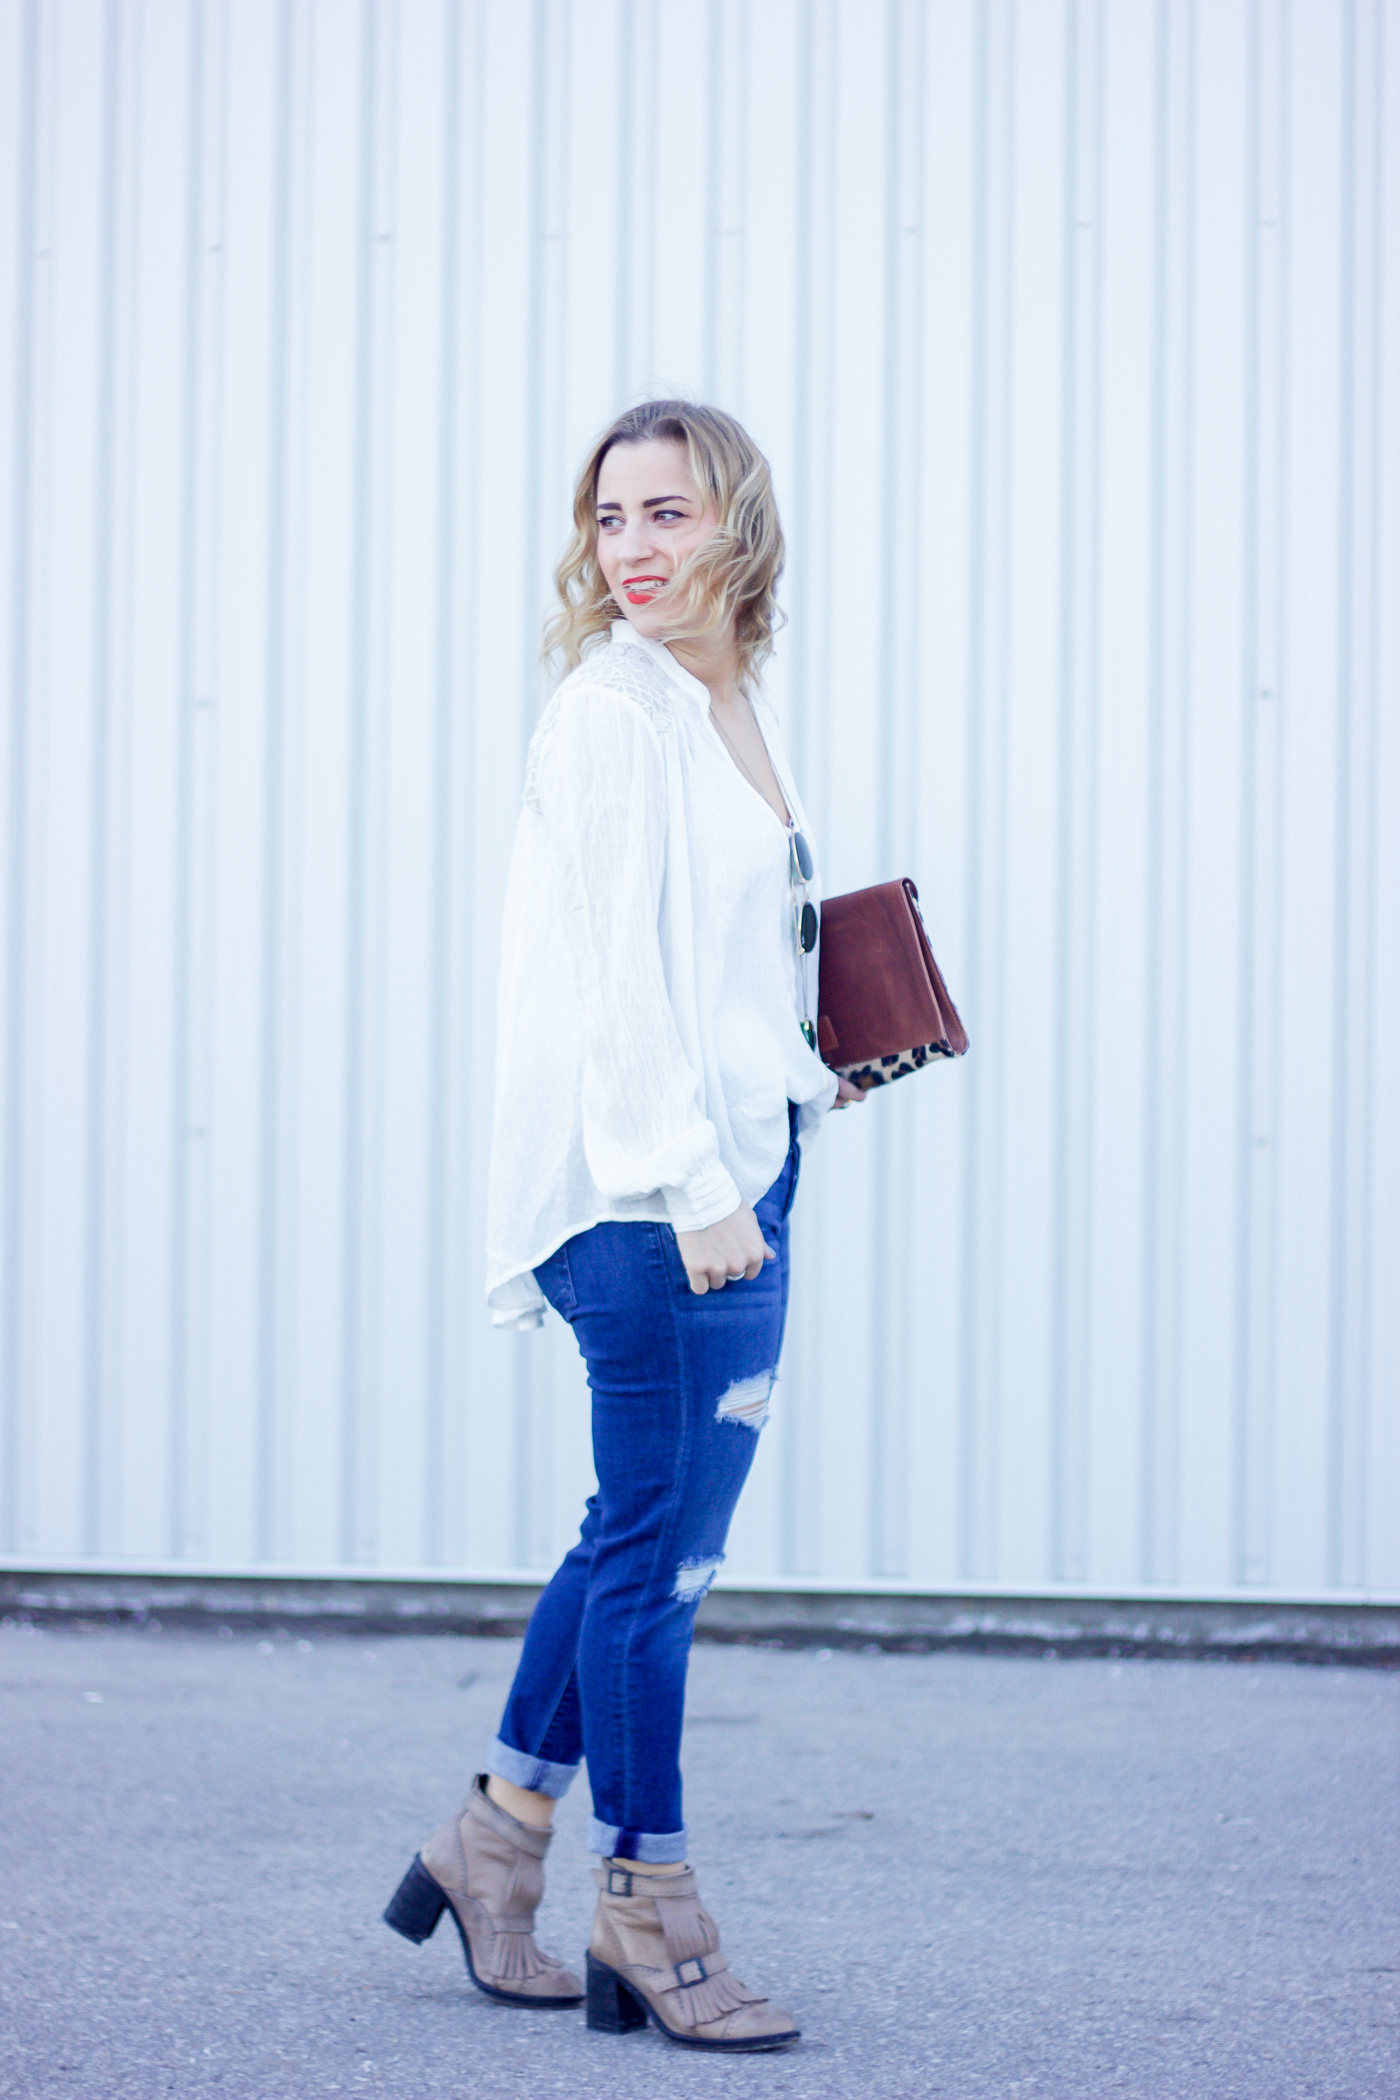 Canadian lifestyle and fashion blogger, Jackie Goldhar of Something About That, is chatting about her experience with how PMS impacts her mood while shopping